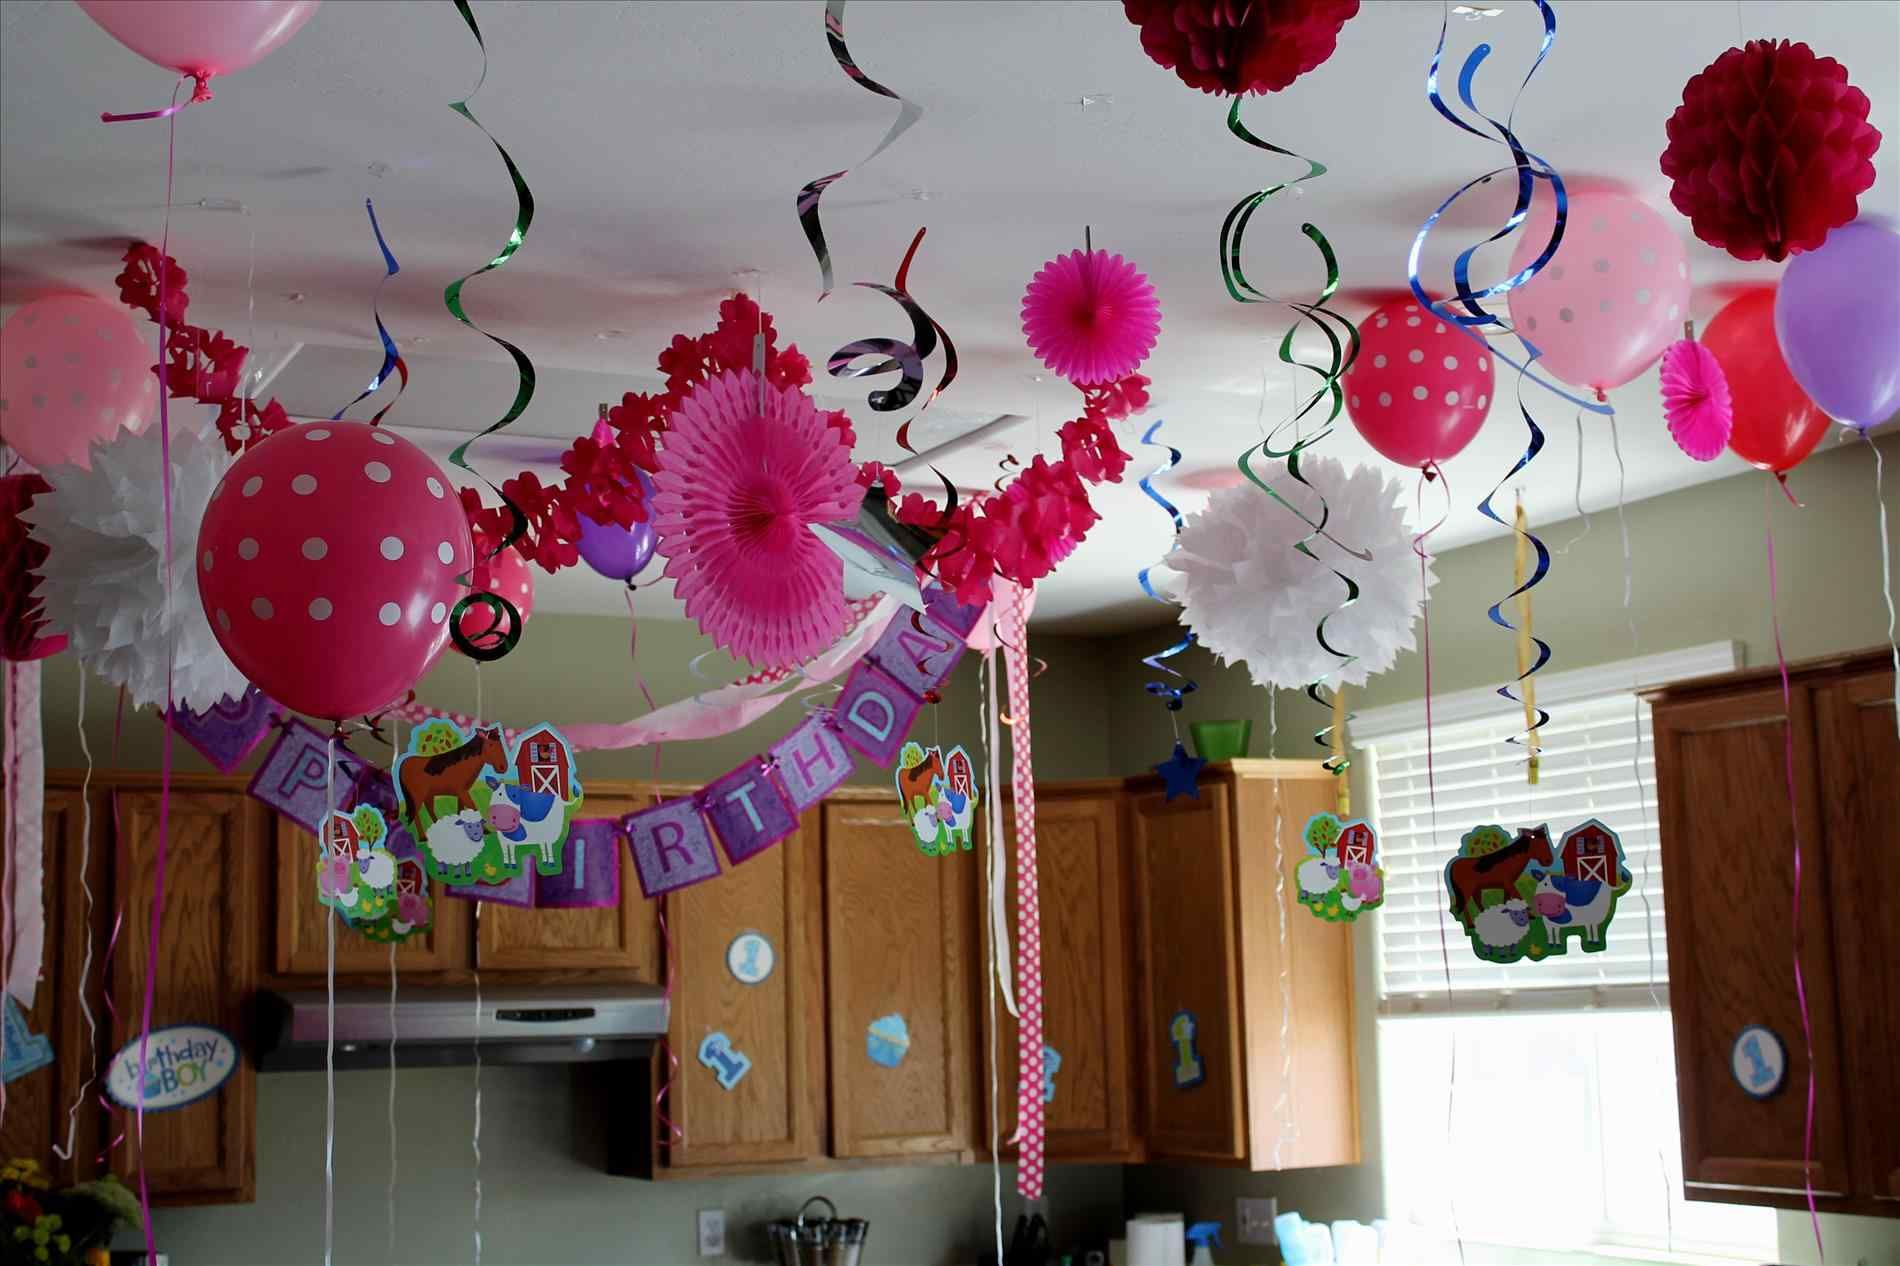 new post birthday decoration ideas at home for him has been